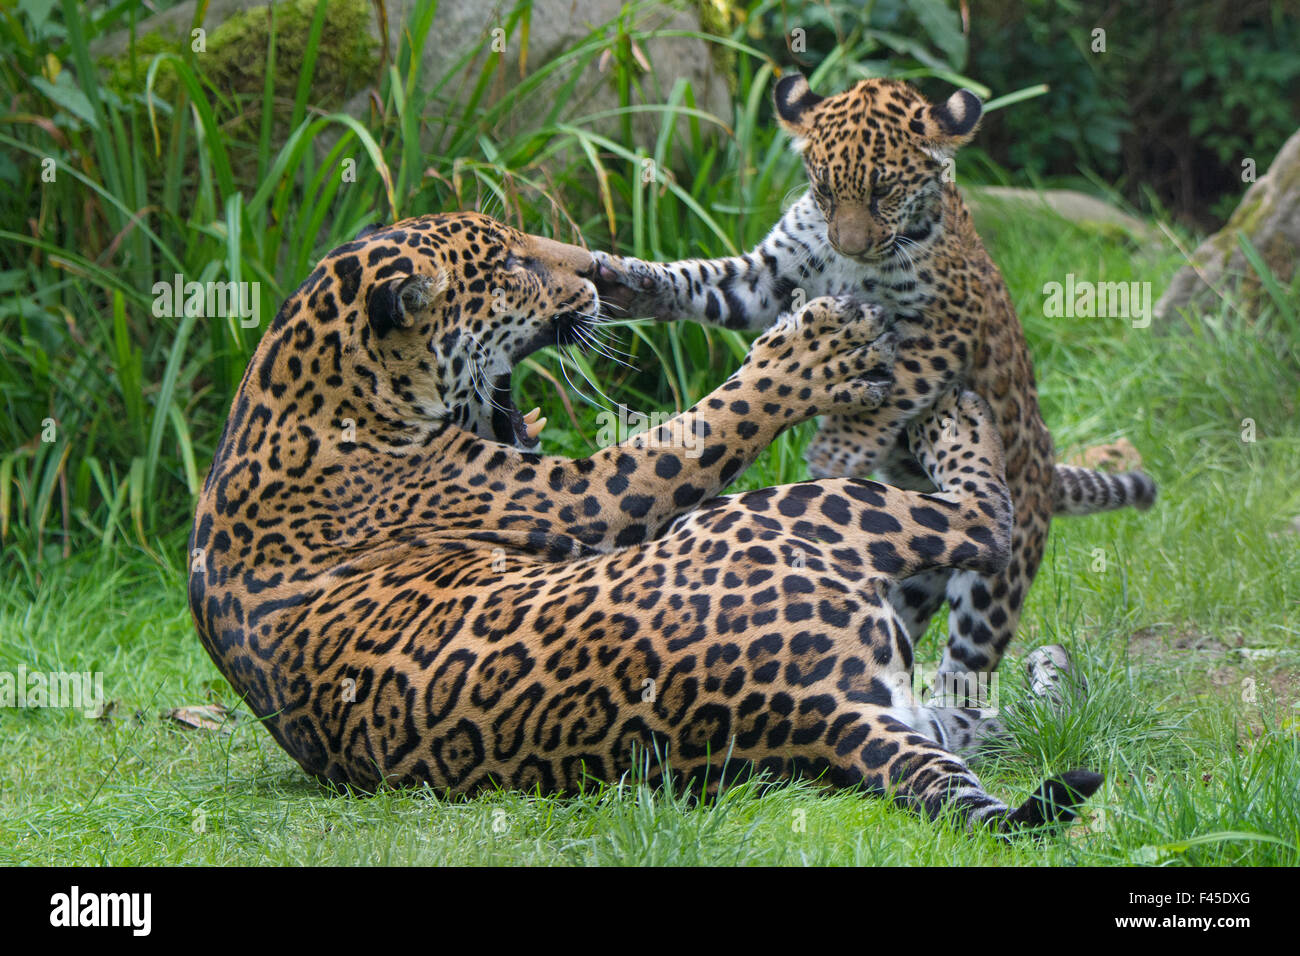 Female Jaguar (Panthera onca) playing with her cub, captive, occurs in Southern and Central America. - Stock Image